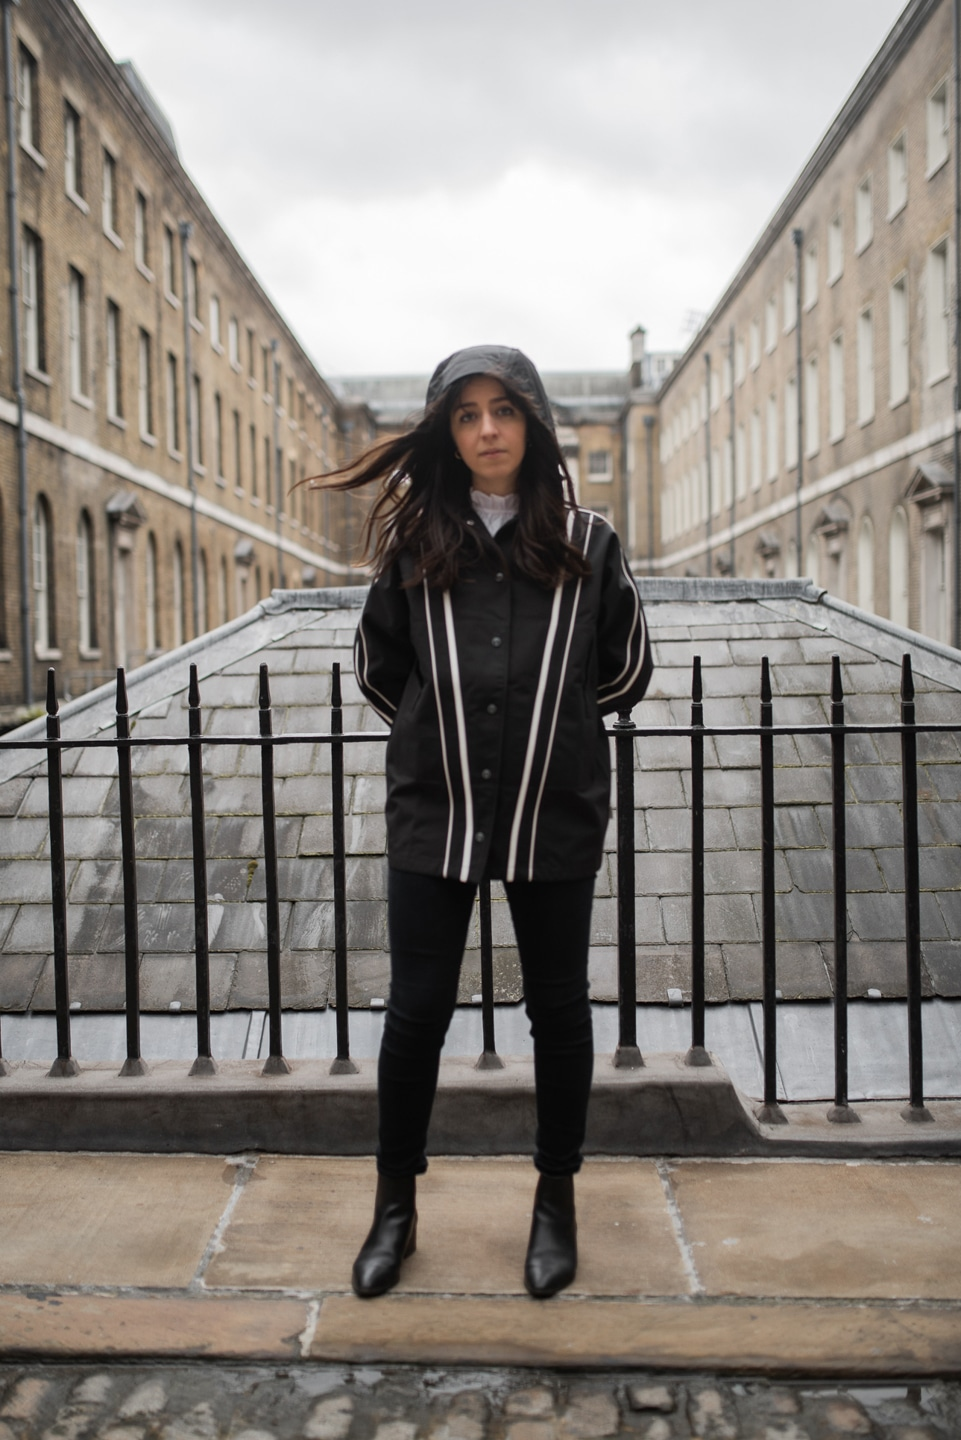 Besma wears sustainable coats from On Good Authority with hood up